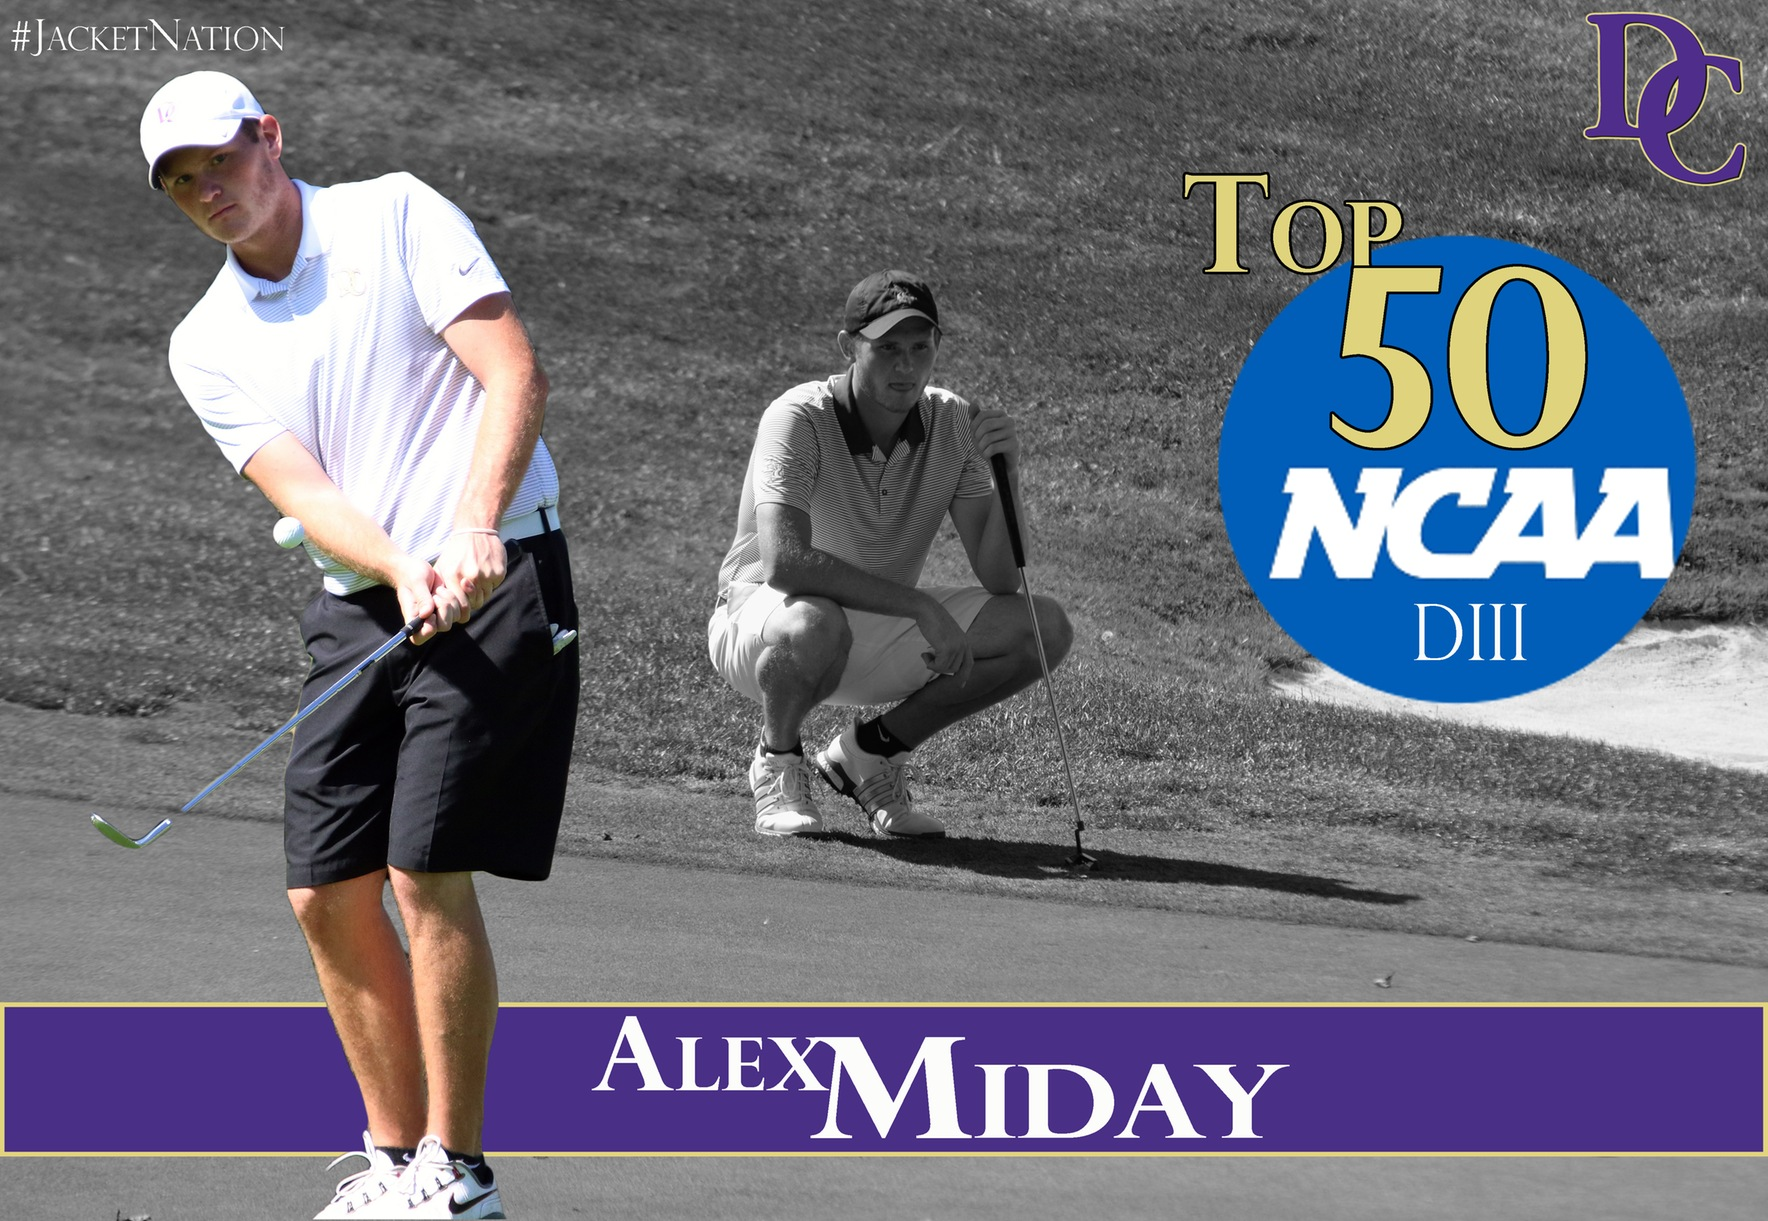 Senior Alex Miday Lands in the Top 50 among NCAA Division III